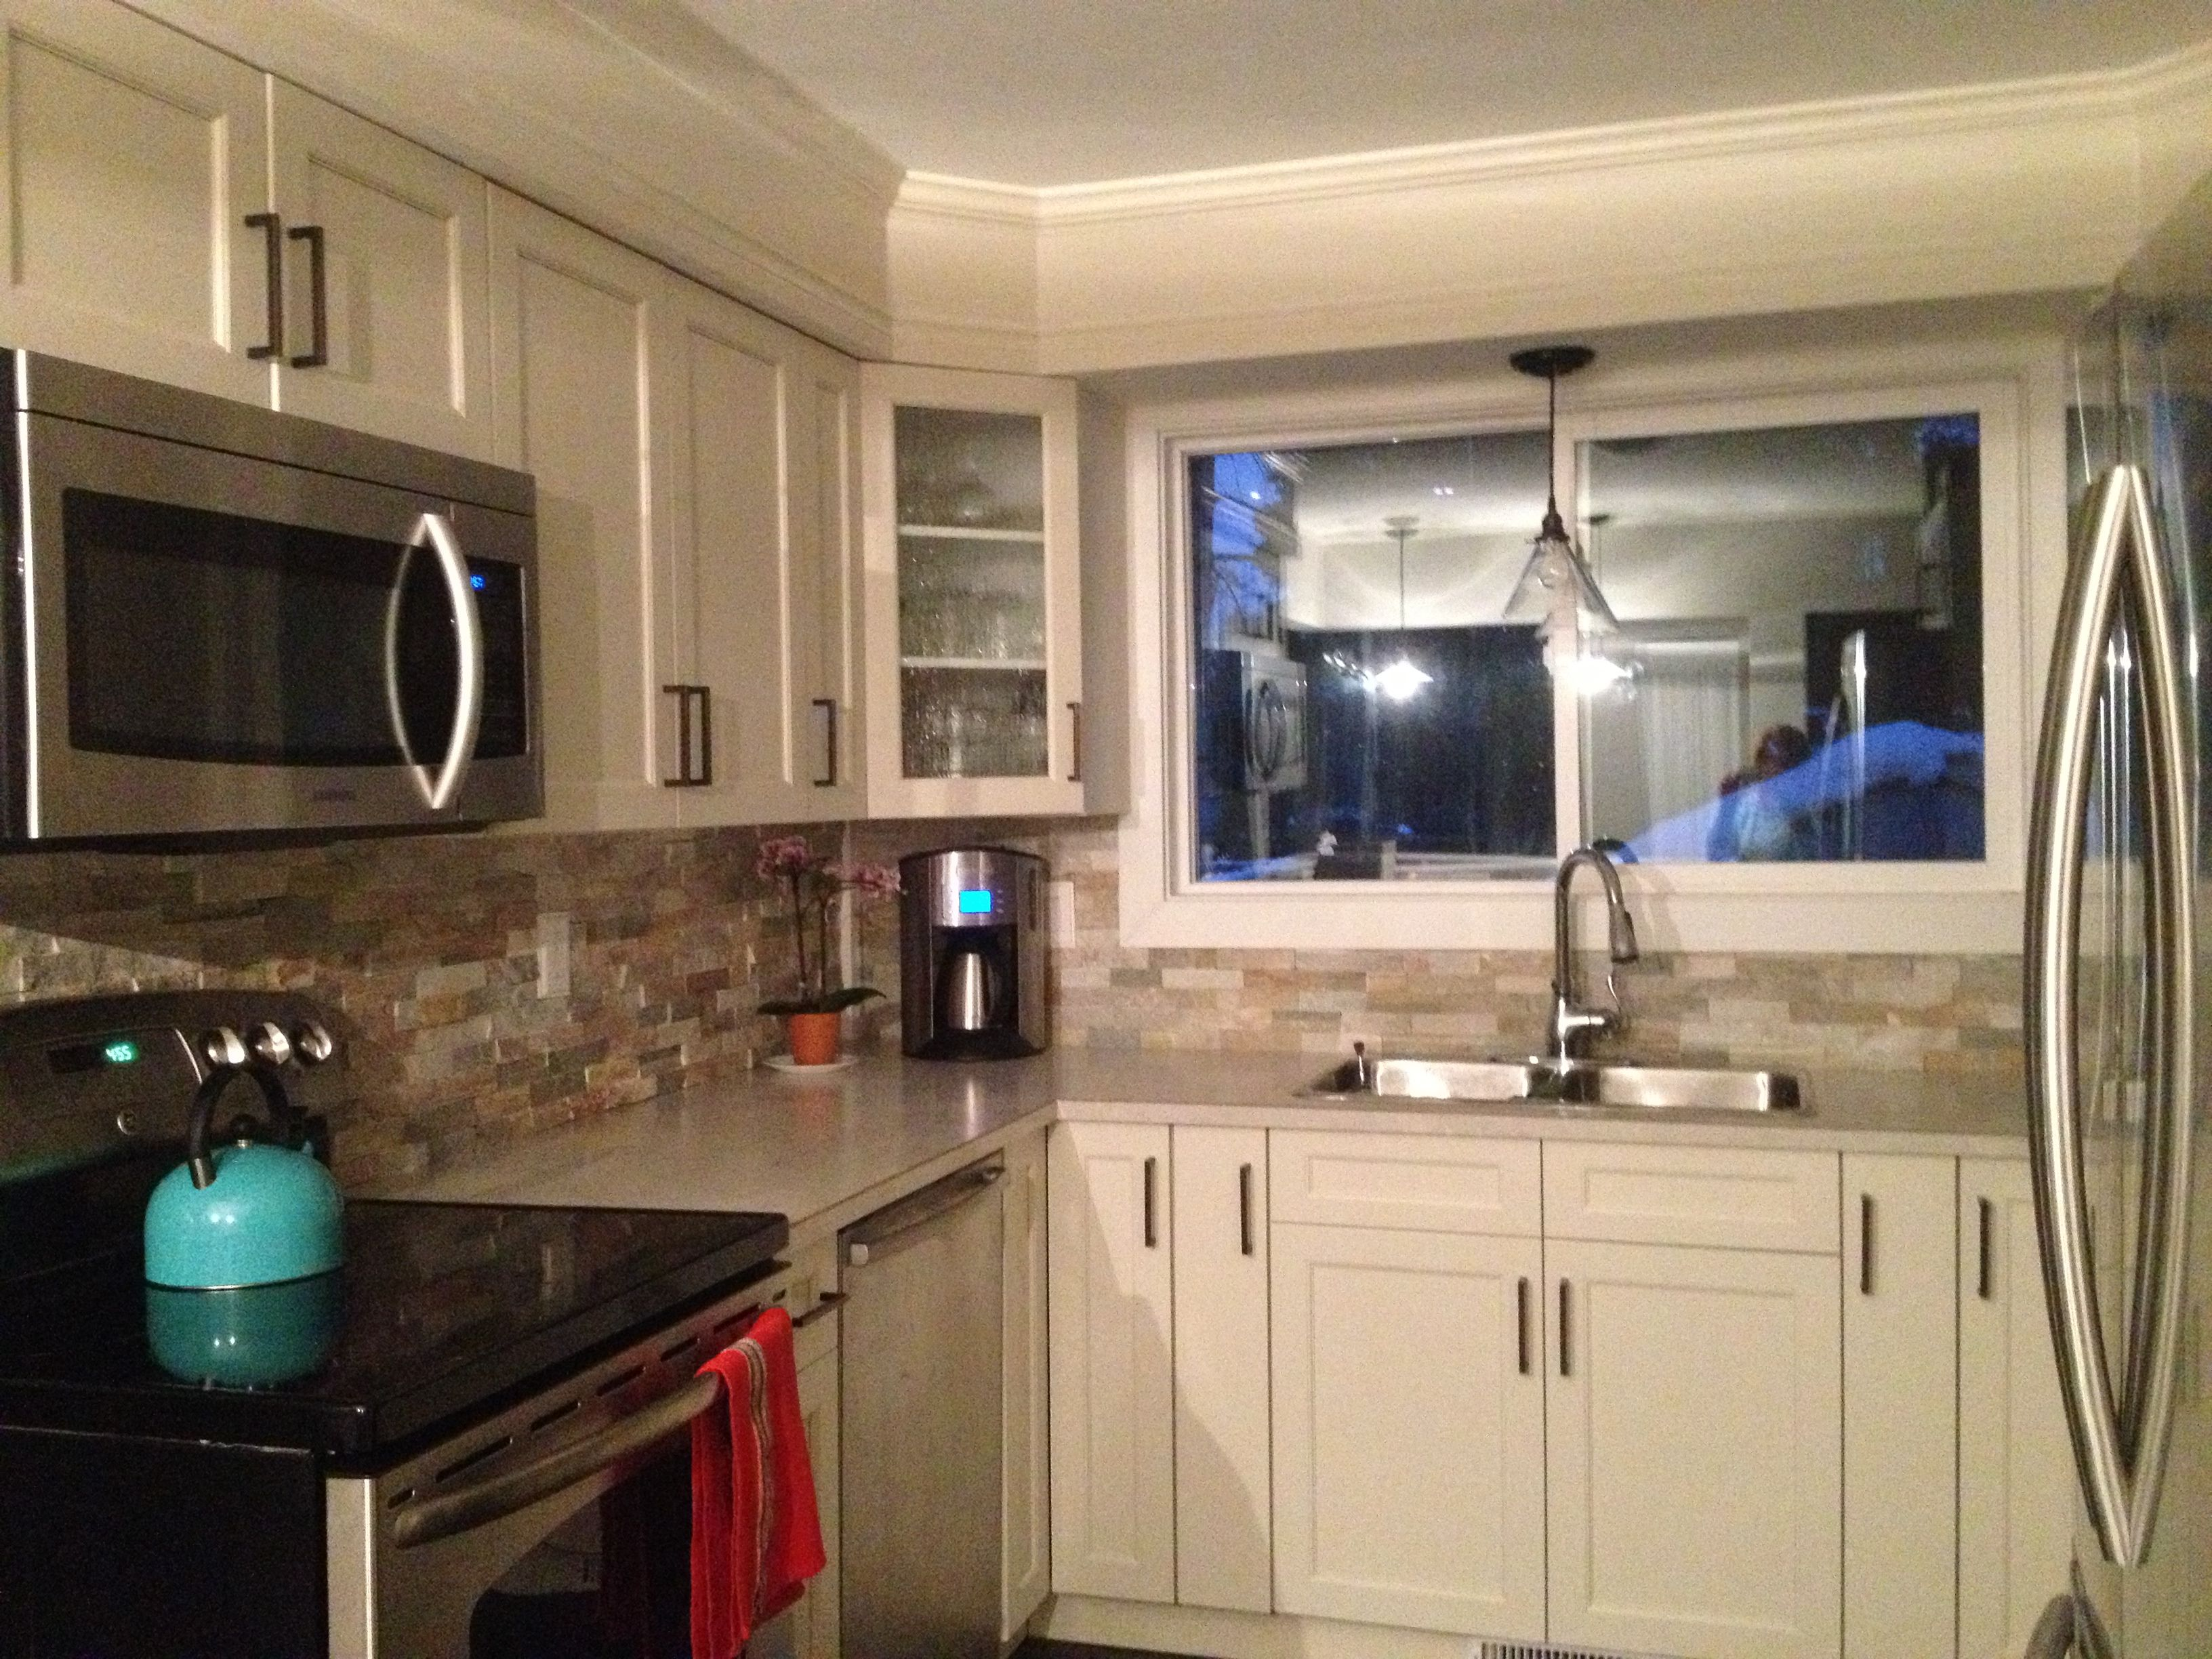 Download Wallpaper Off White Kitchen Cabinets With Bronze Hardware